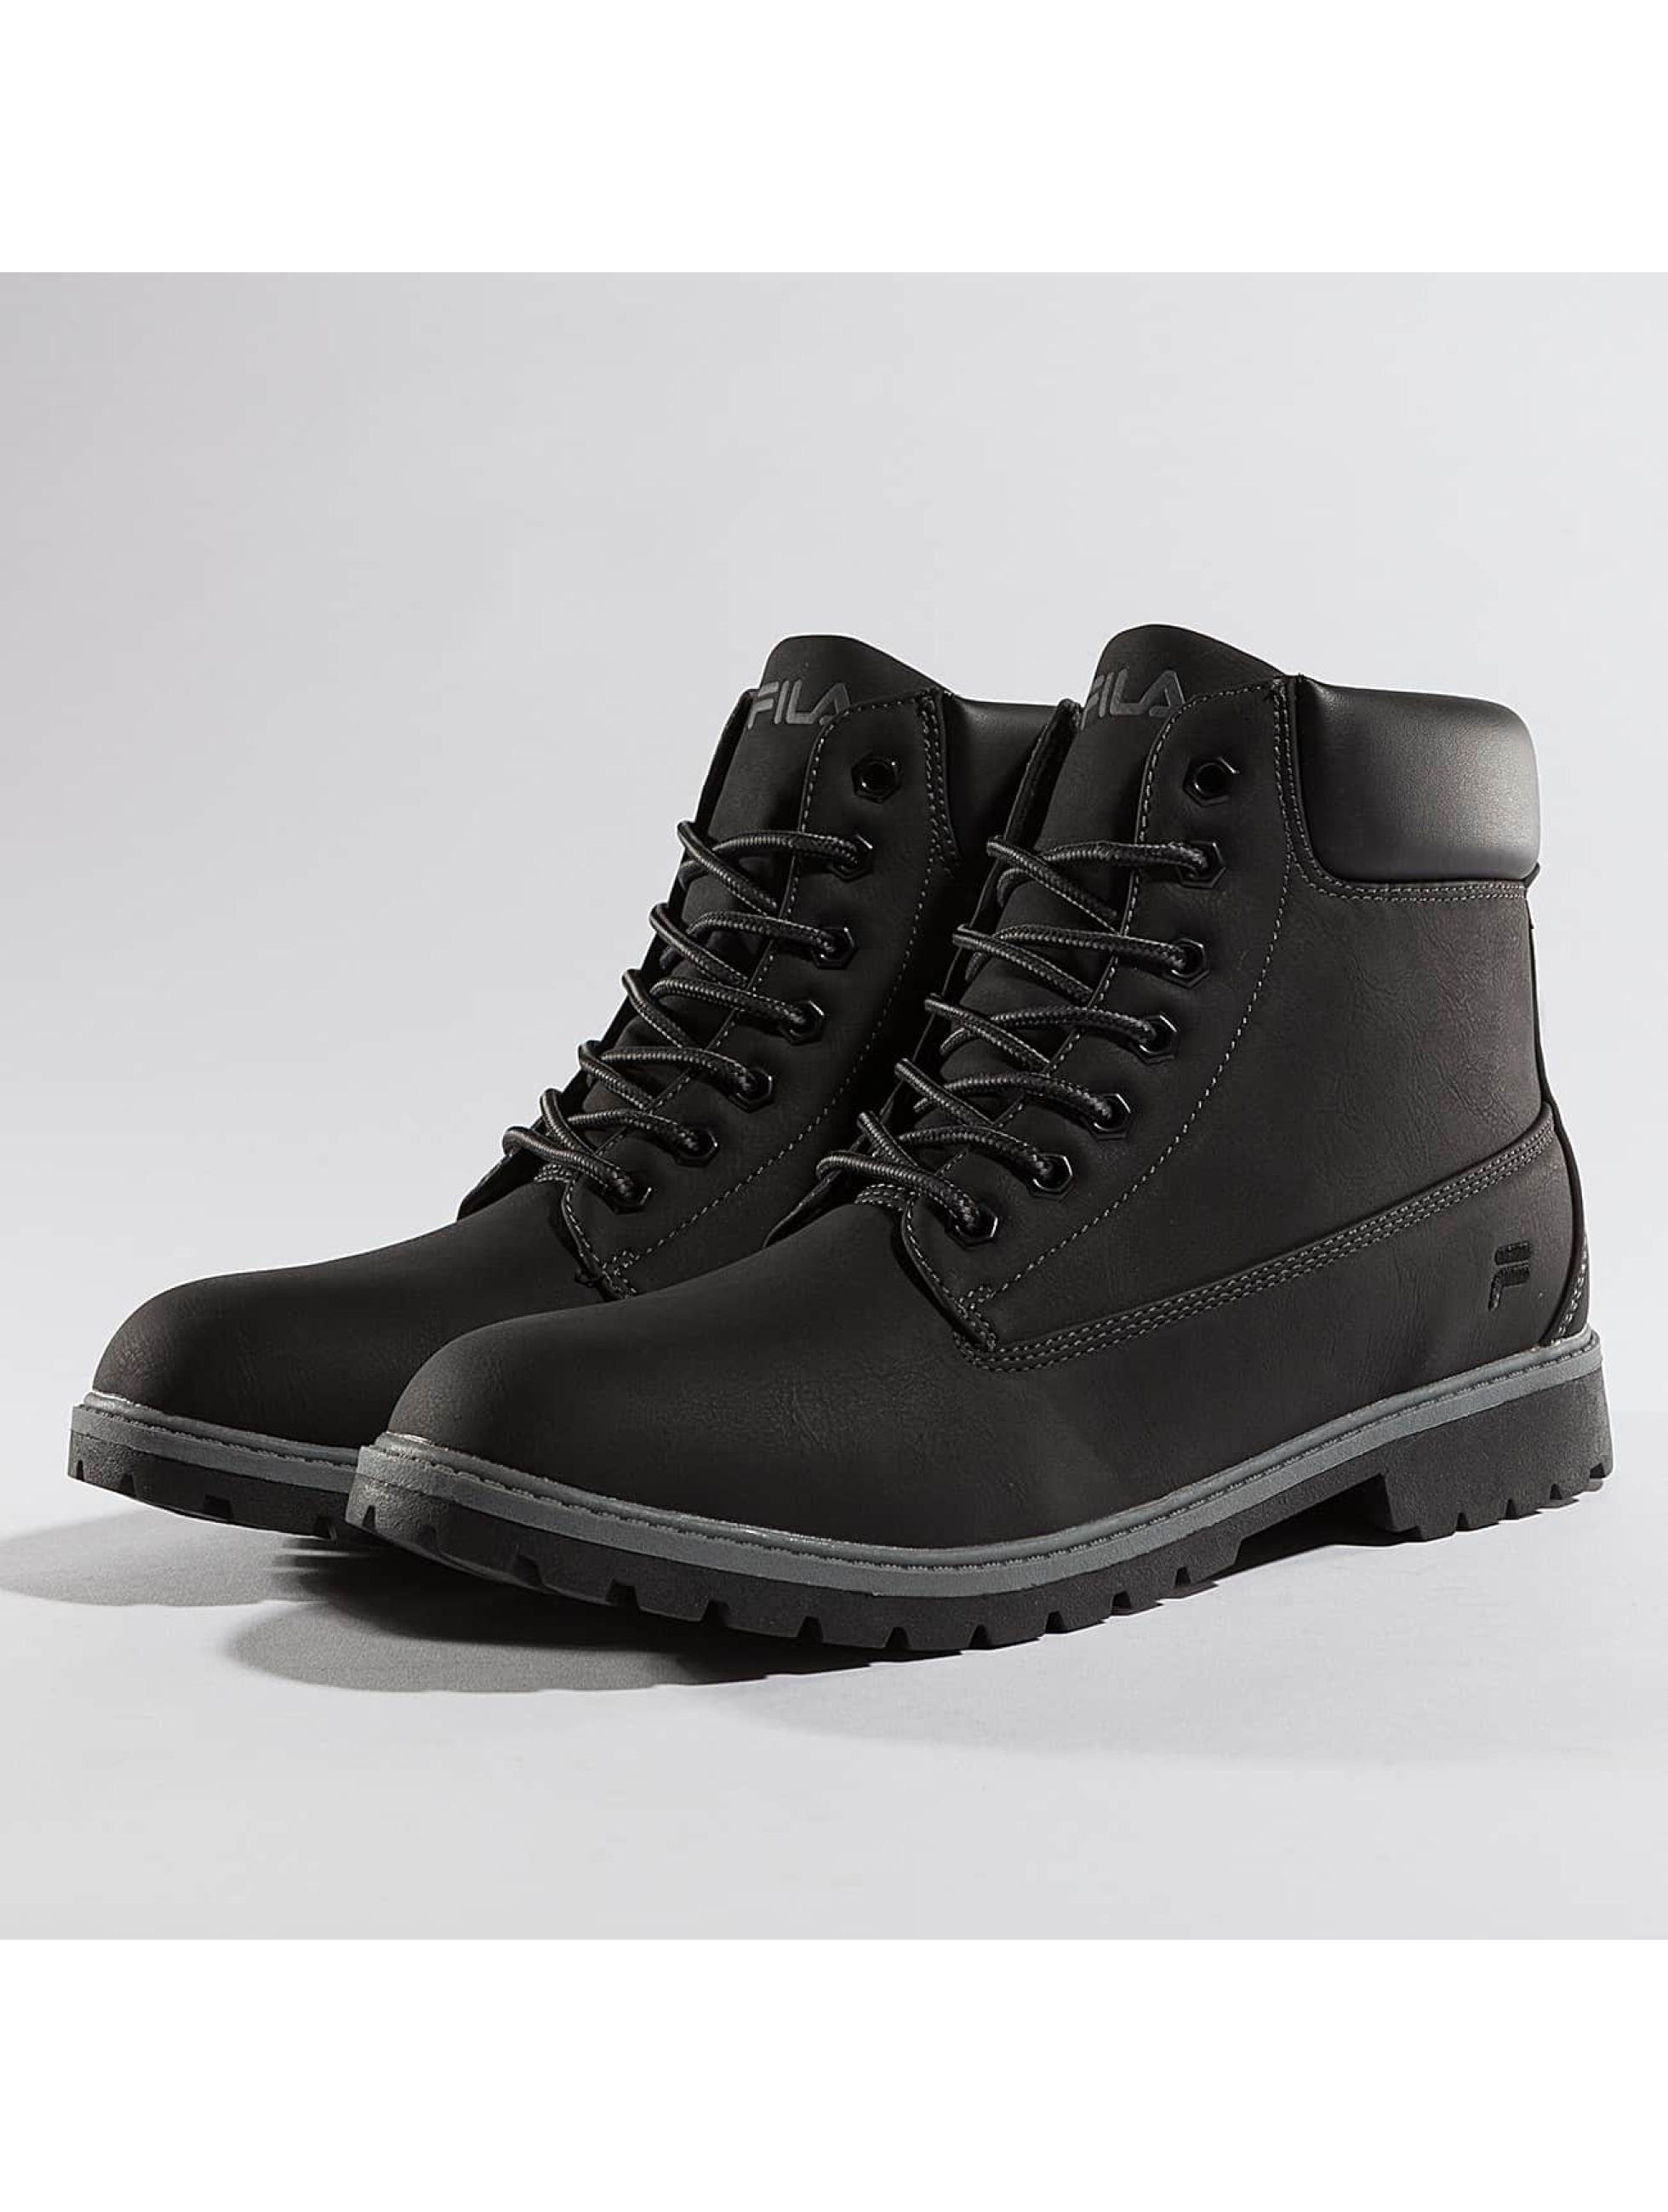 FILA Frauen Boots Base Maverick Mid in schwarz